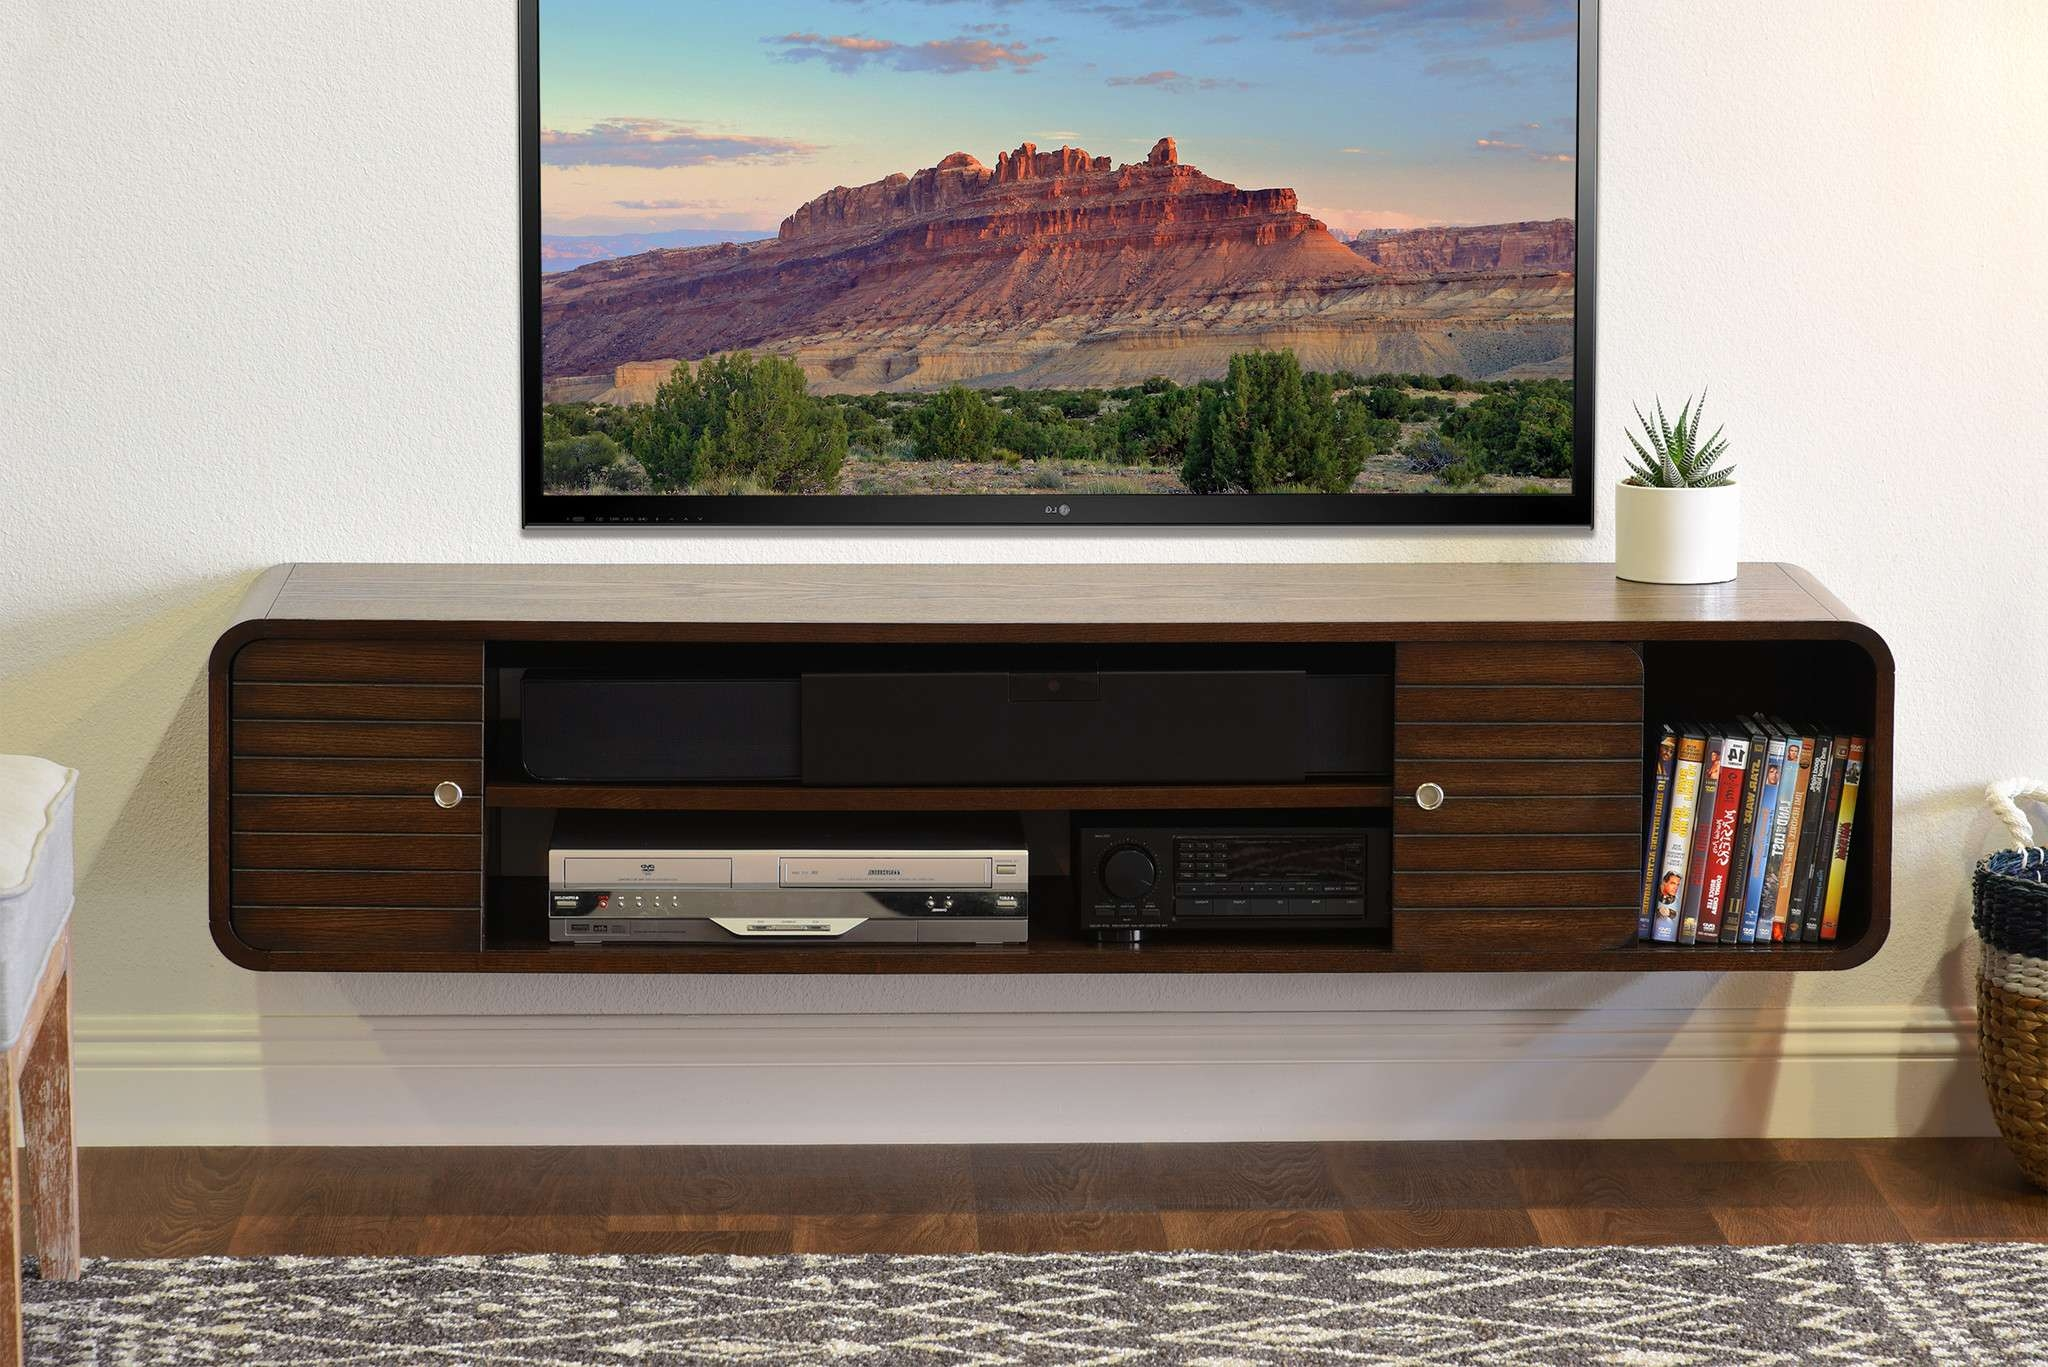 Rustic Brown Polished Oak Wood Wall Mounted Tv Cabinet Shelf With With Regard To Under Tv Cabinets (View 10 of 20)